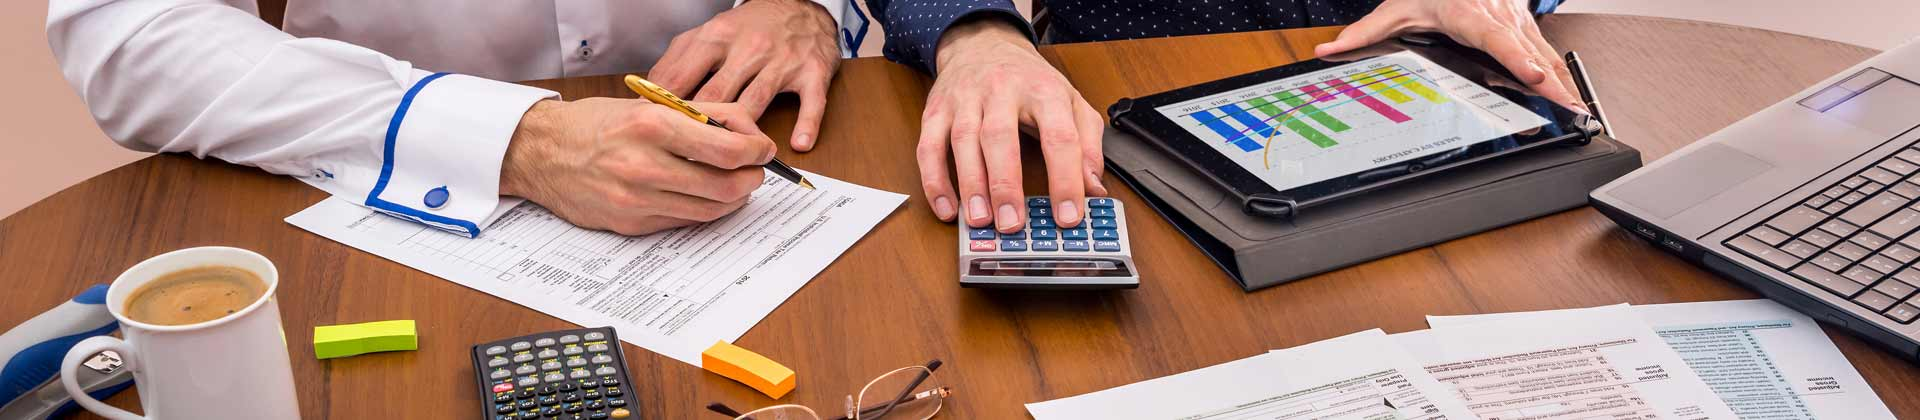 Team providing accounting services